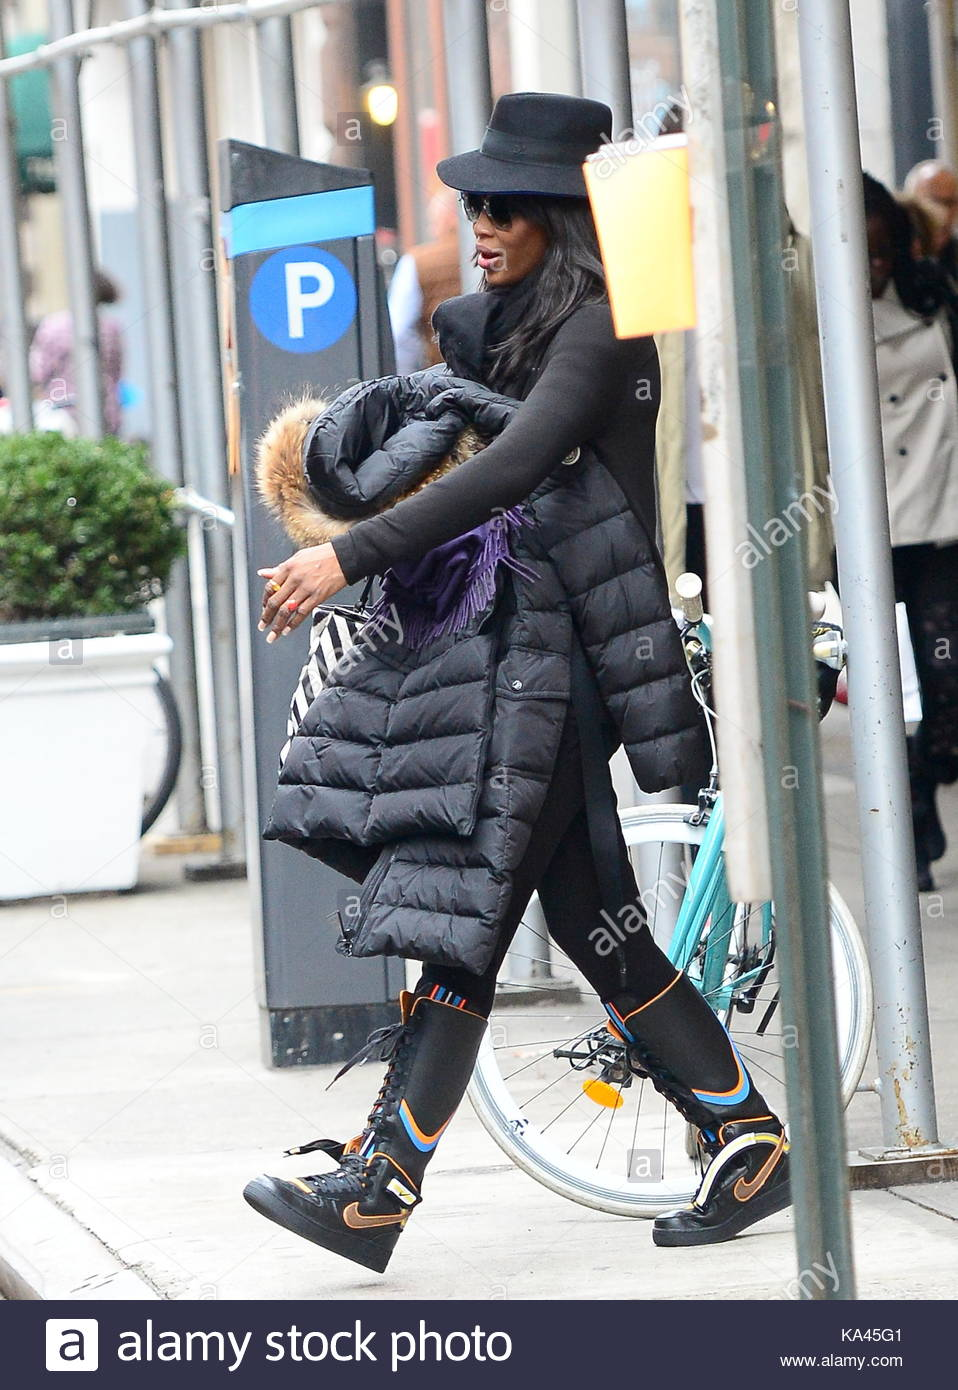 Stock. Naomi Campbell. Naomi Campbell rocks Nike shoes and a black dress in  NYC.